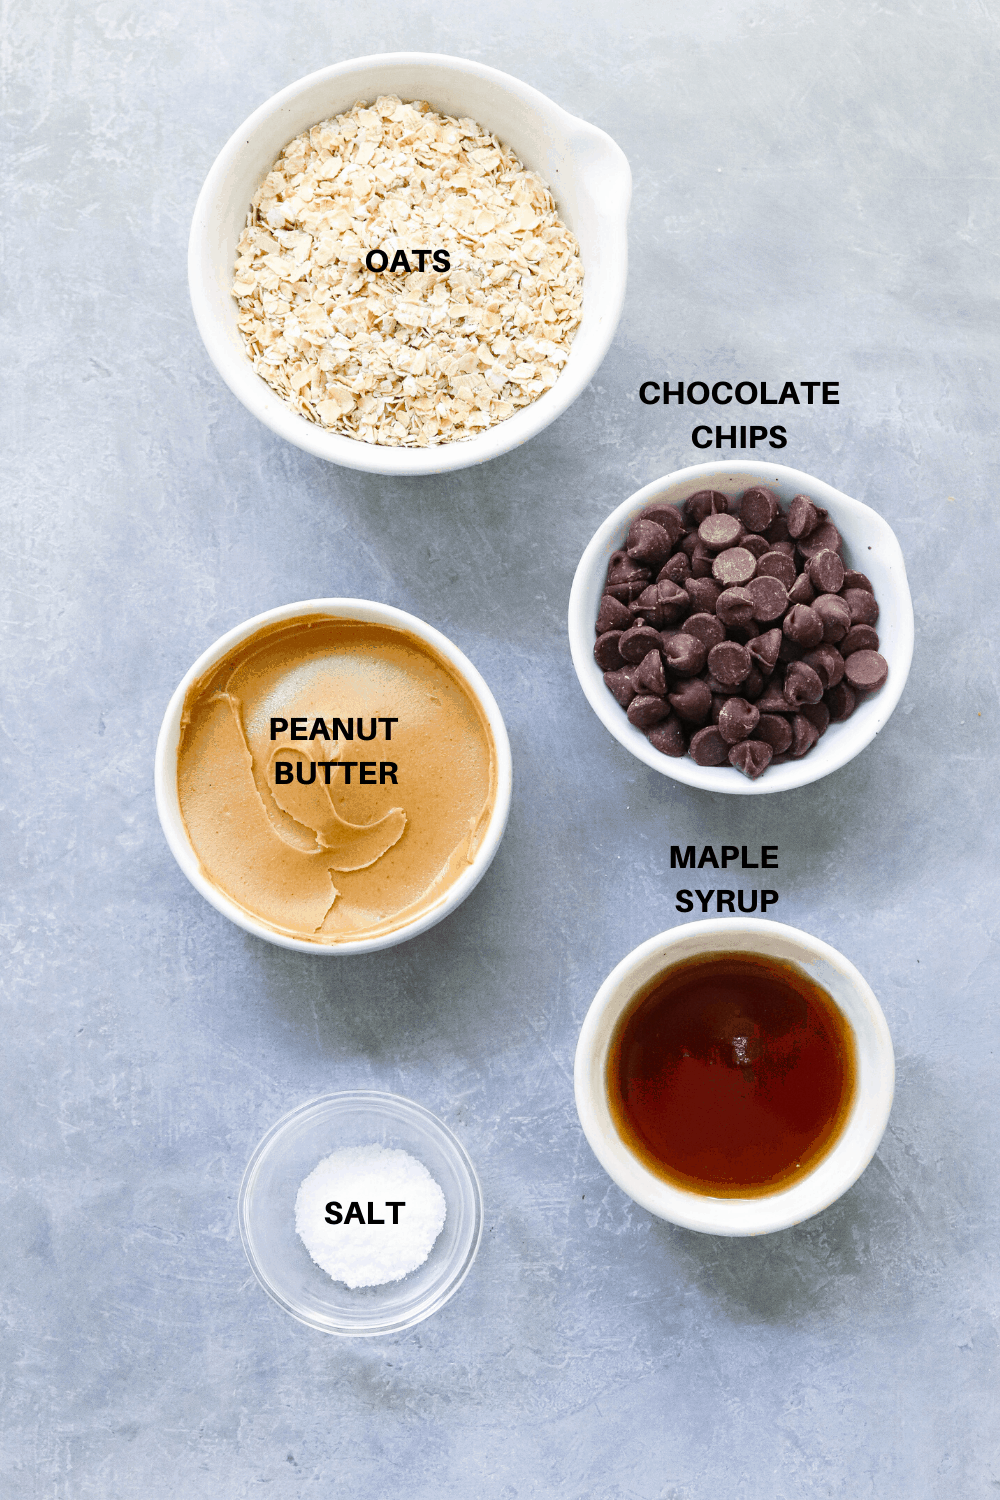 Oats, peanut butter and chocolate chips in bowls on a gray board.